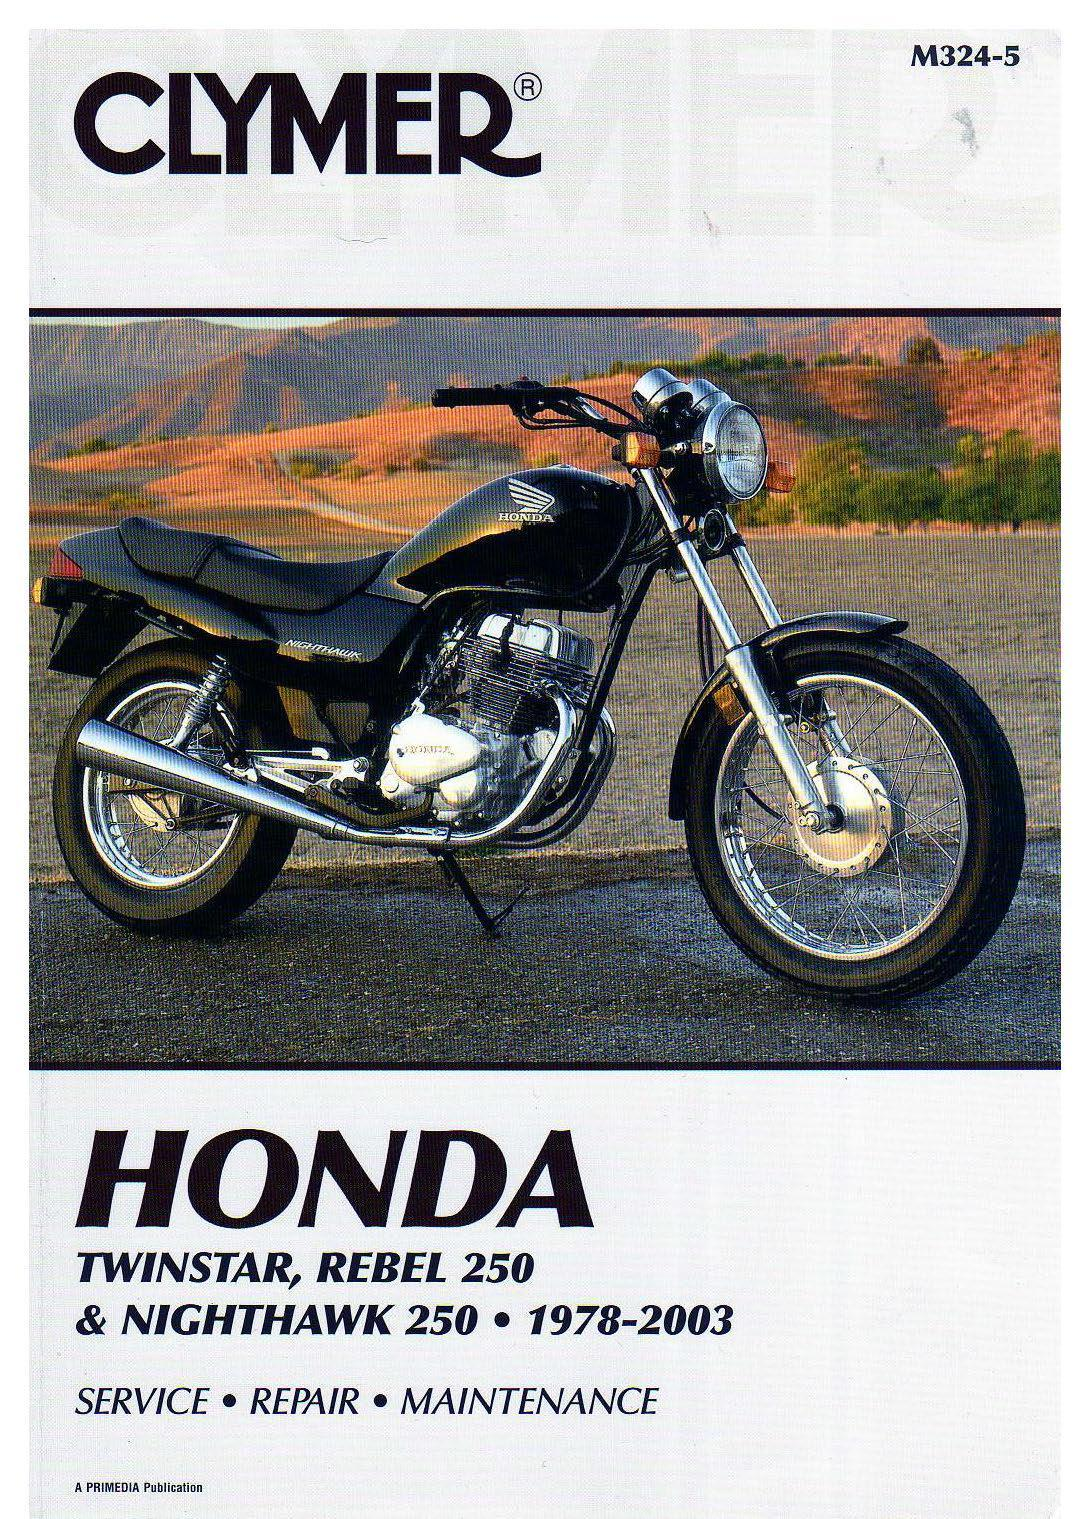 Workshop Manuals All The Data For Your Honda 1983 Volkswagen Vanagon Repair Manual Cmx250 Rebel Twinstar Nighthawk 1978 2003